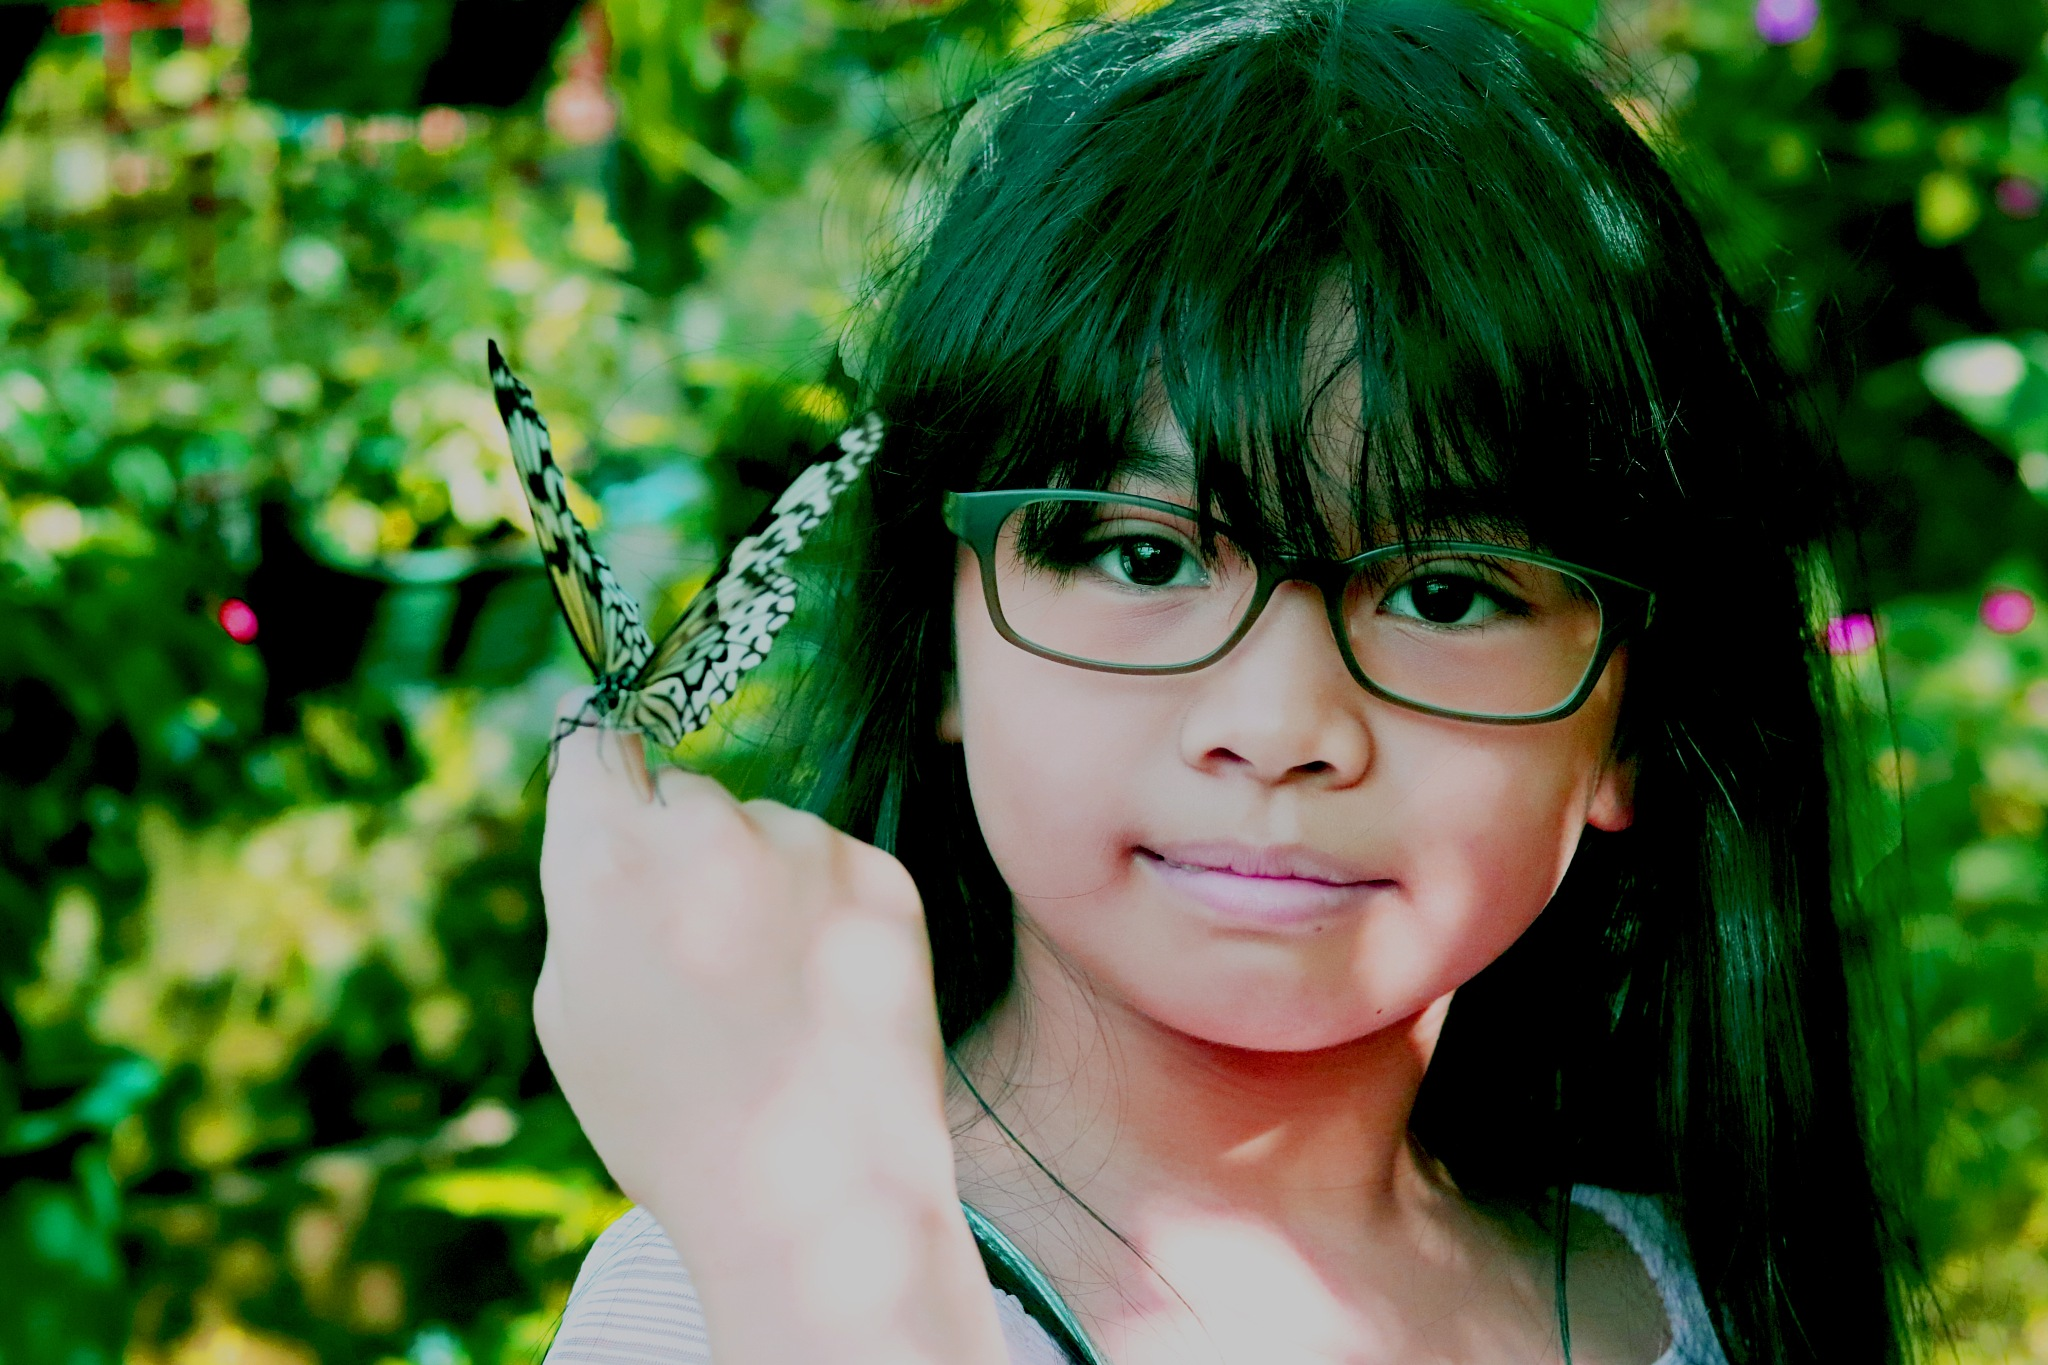 Me and Butterfly by Arvin Cada